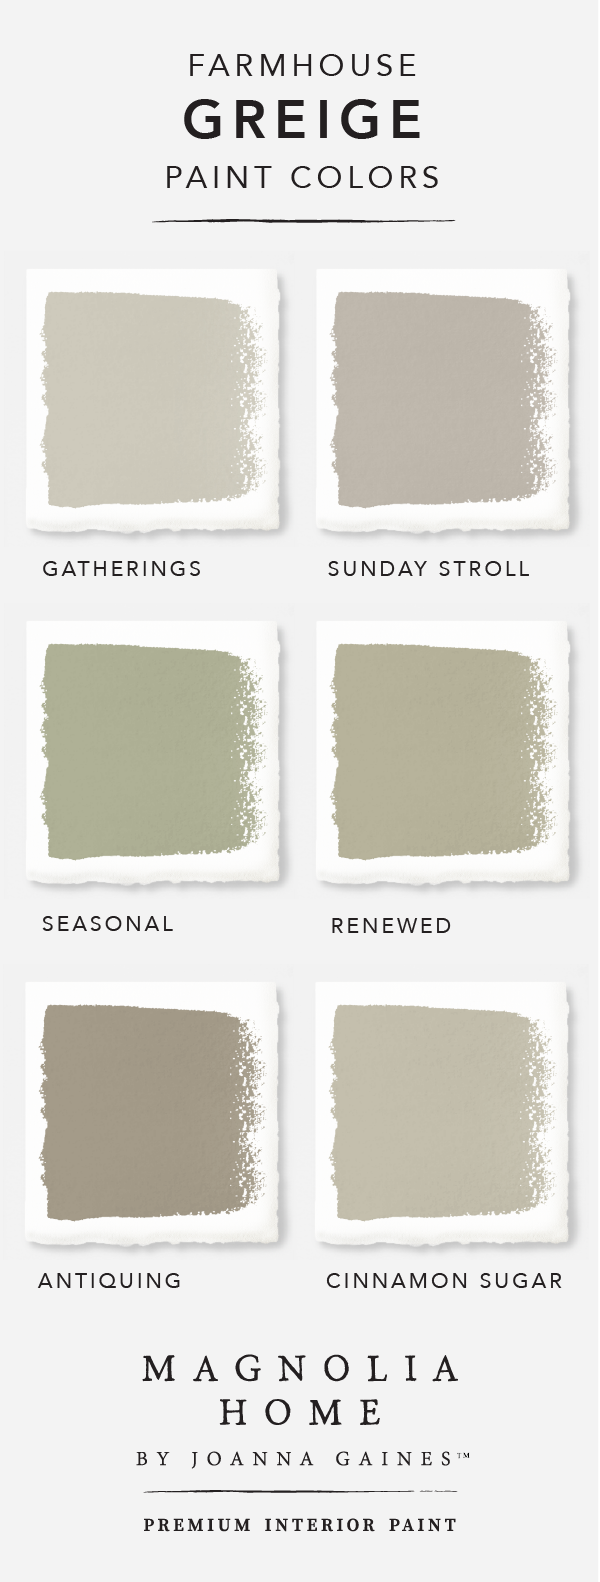 Give Your Home A Chic Modern Update With A Little Help From The Magnolia Home By Joanna Gainestm Paint Colle Magnolia Homes Paint Colors For Home Paint Colors